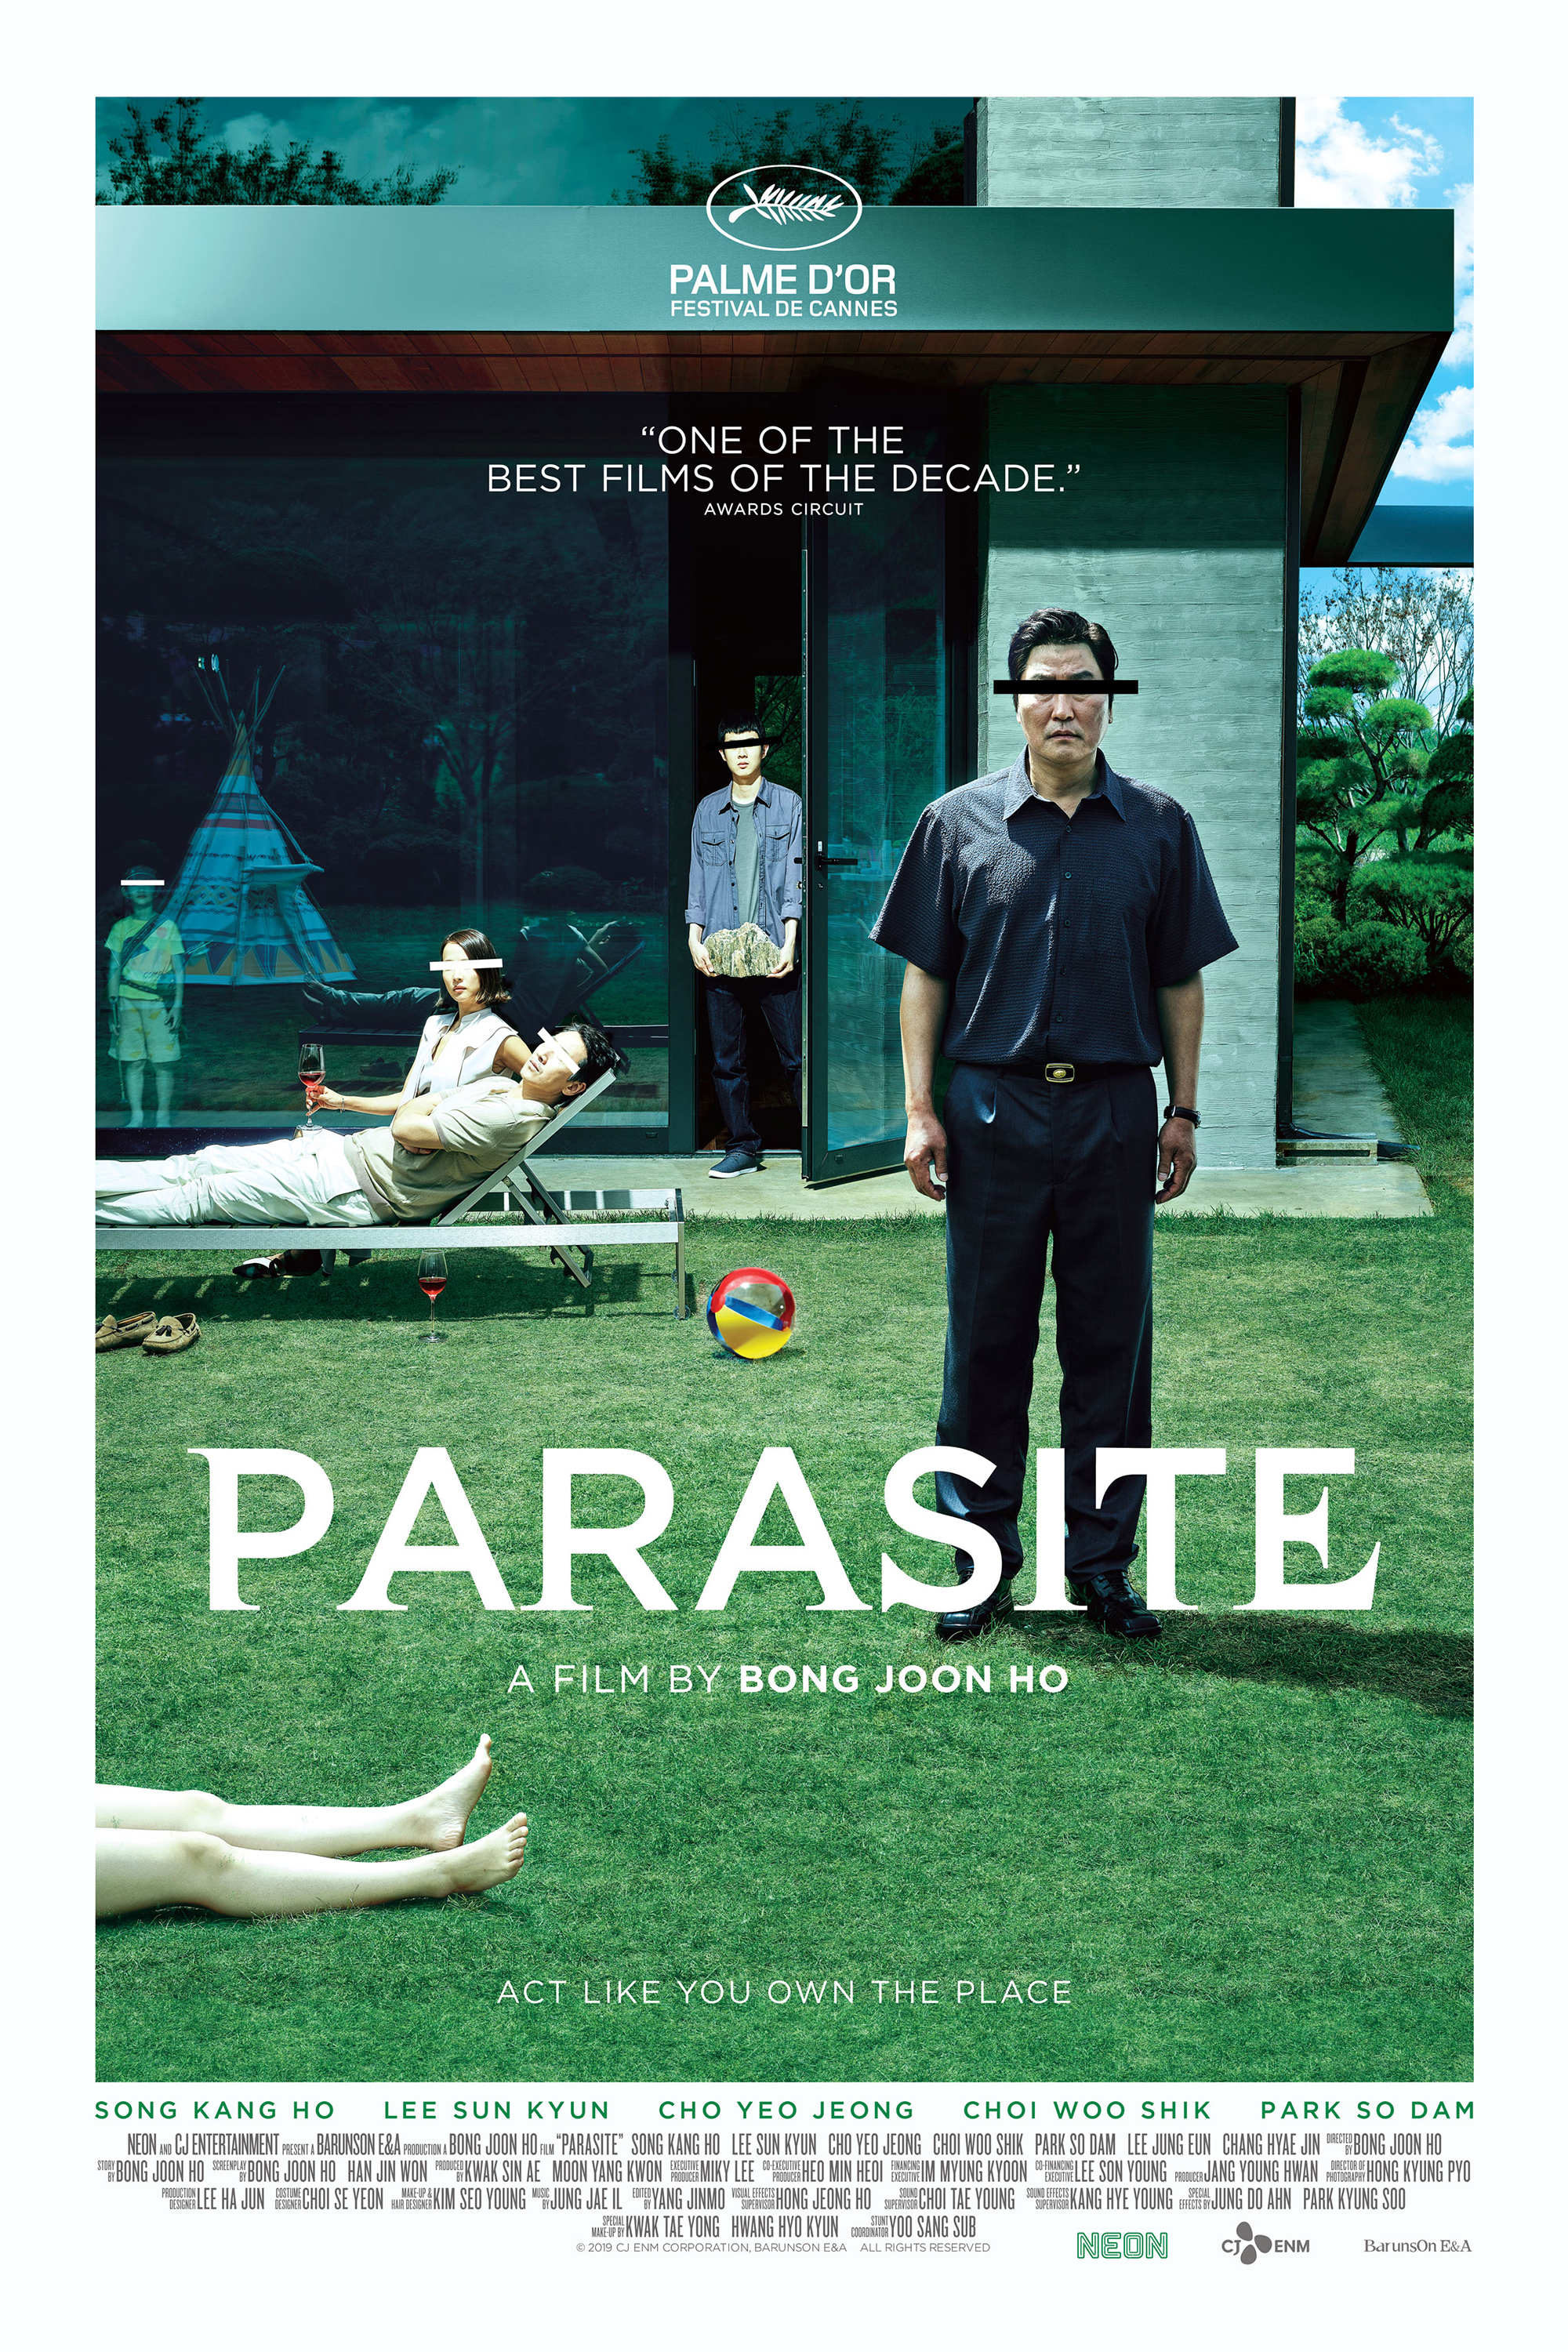 Still of Parasite